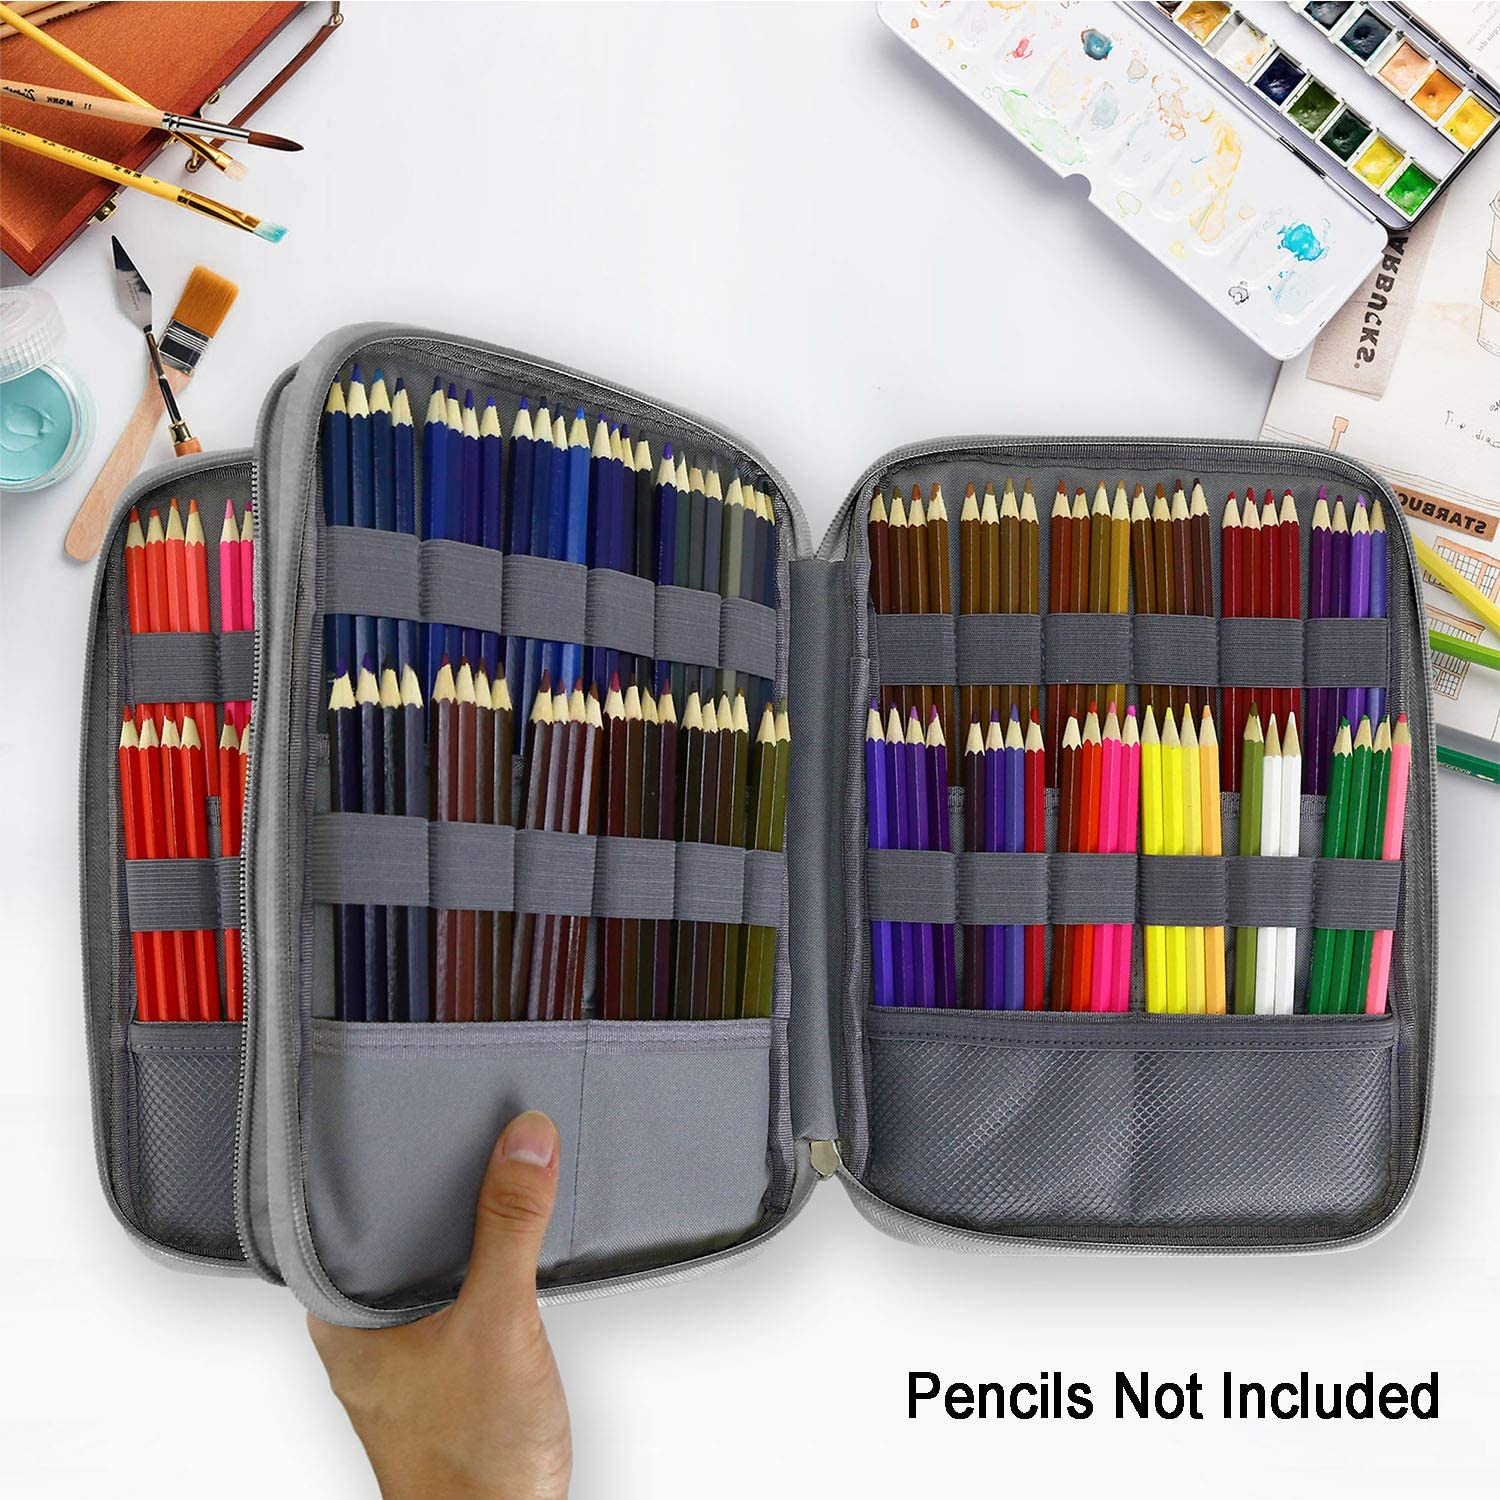 Colorful Leaves YOUSHARES 192 Slots Colored Pencil Case Gel Pens for Student /& Artist Large Capacity Pencil Holder Pen Organizer Bag with Zipper for Prismacolor Watercolor Coloring Pencils